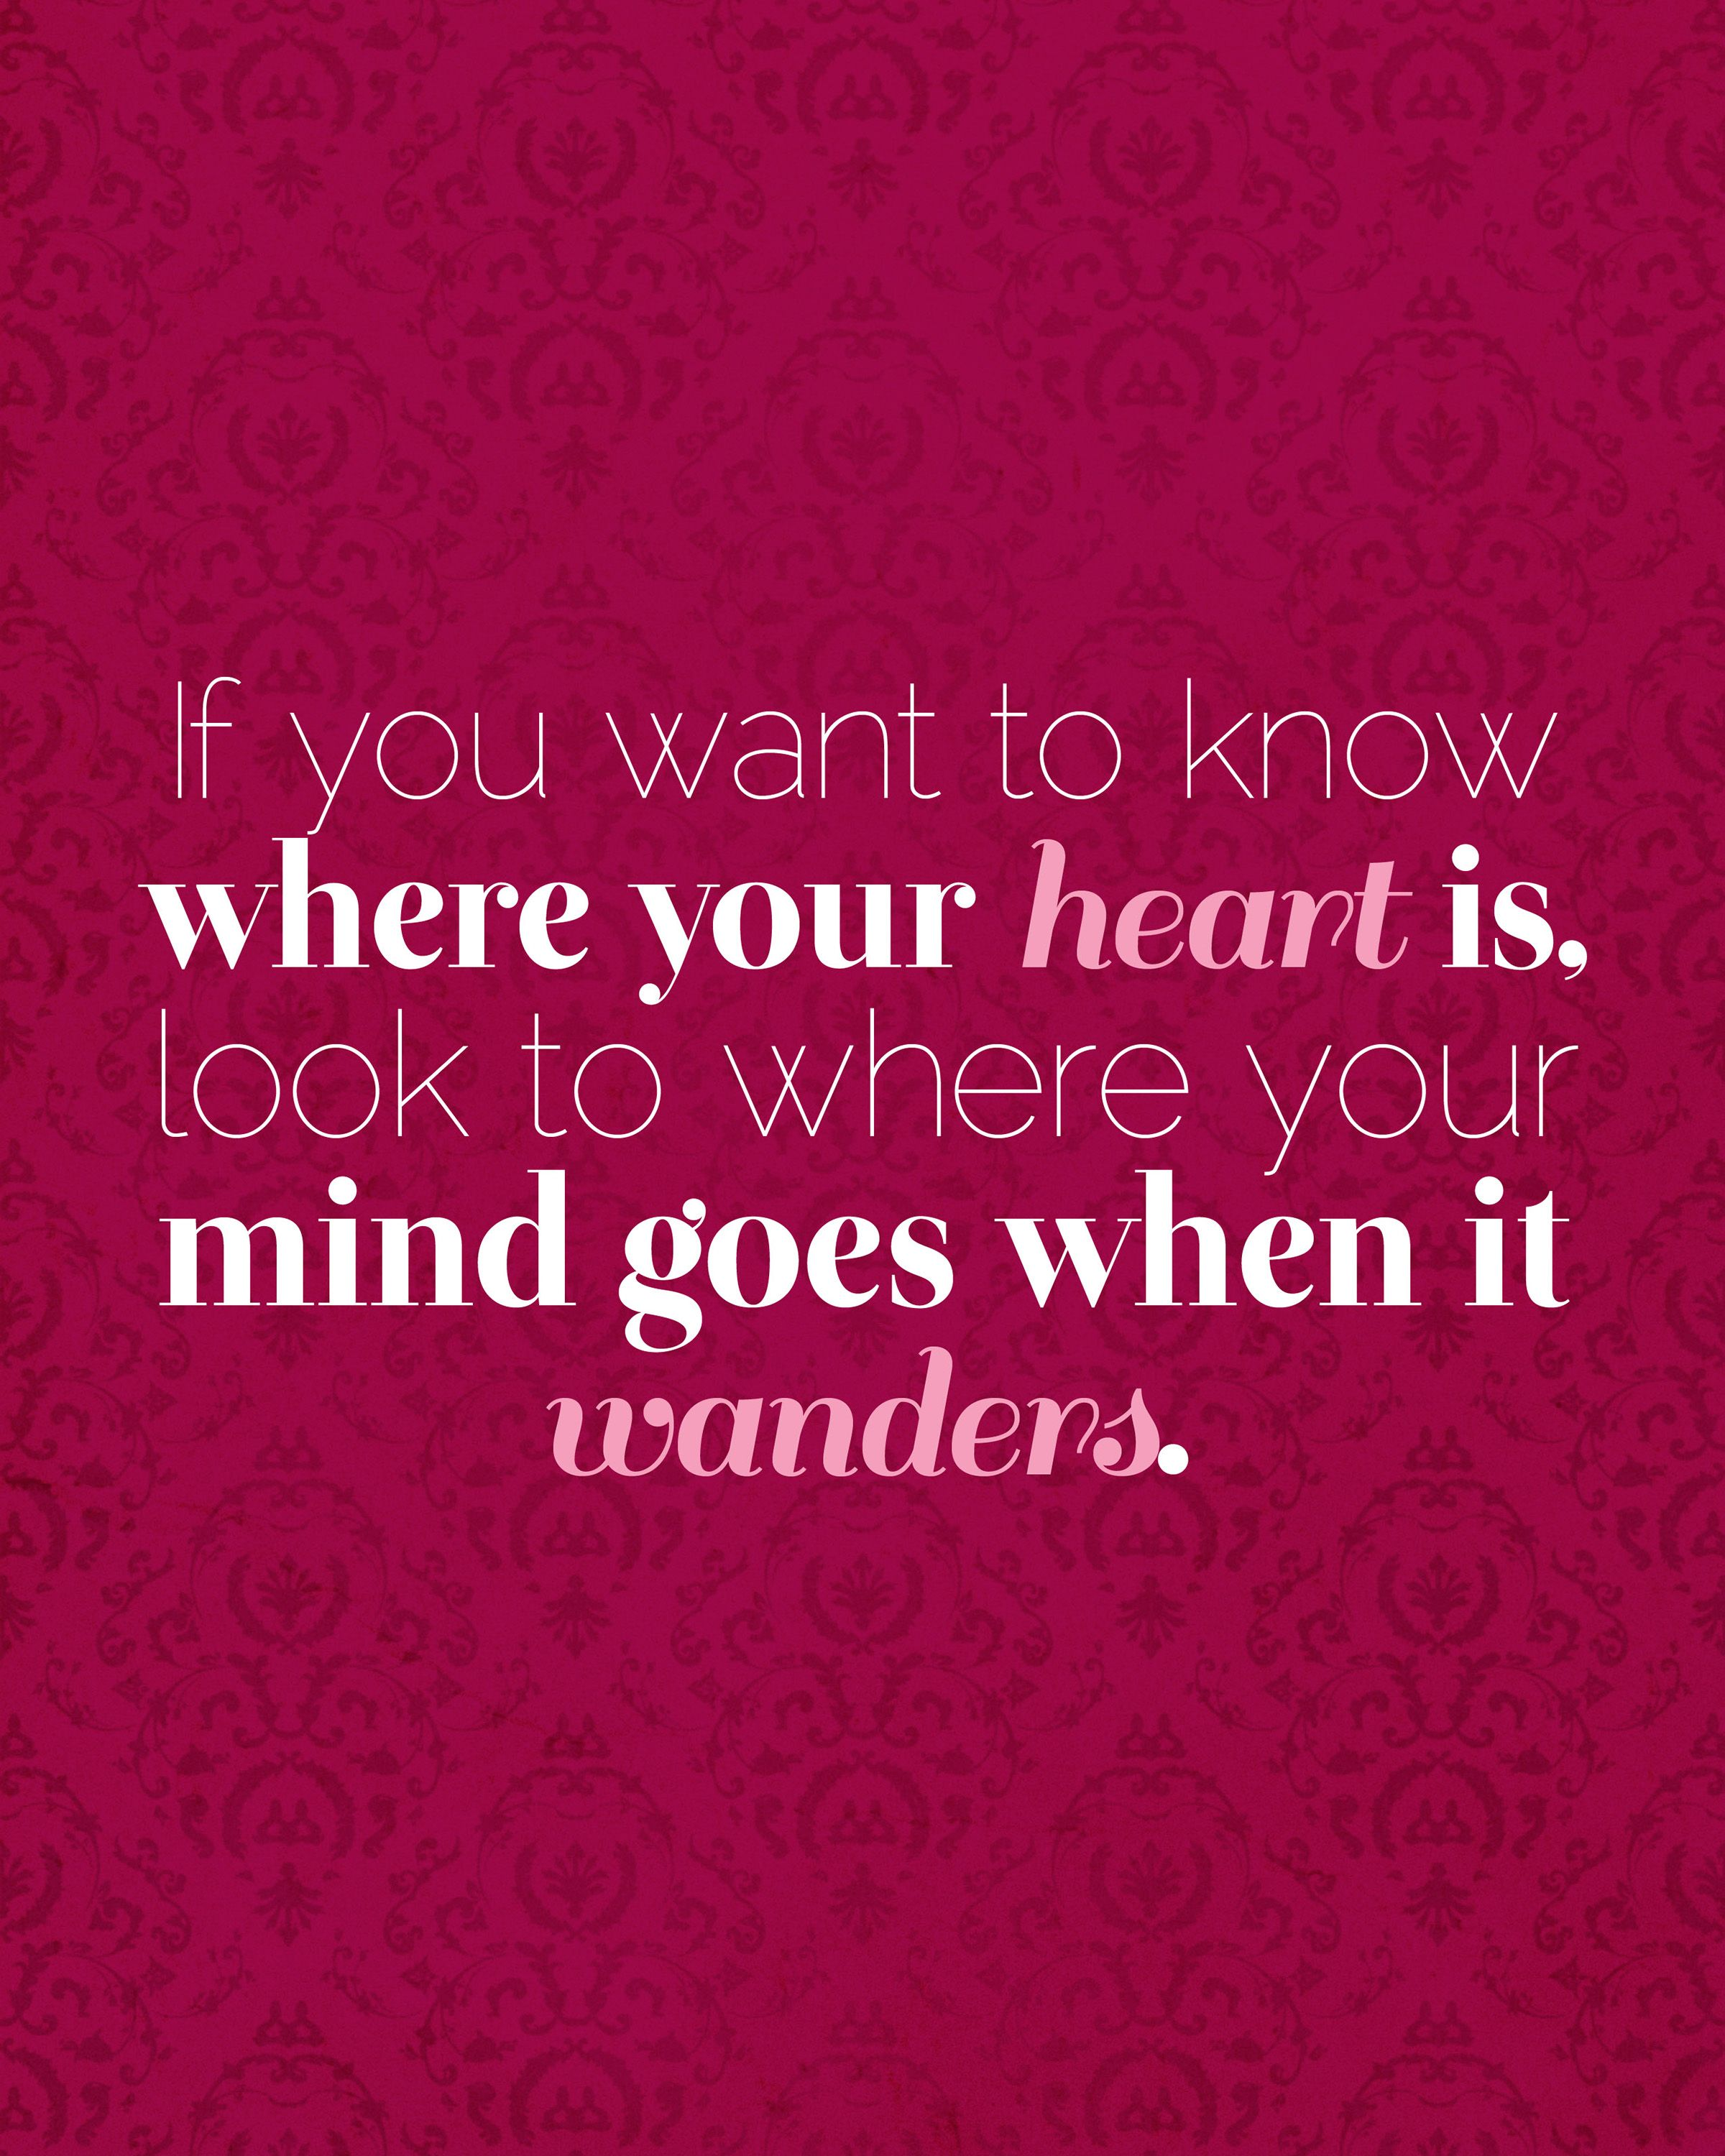 Inspirational Printable If You Want To Know Where Your Heart Is